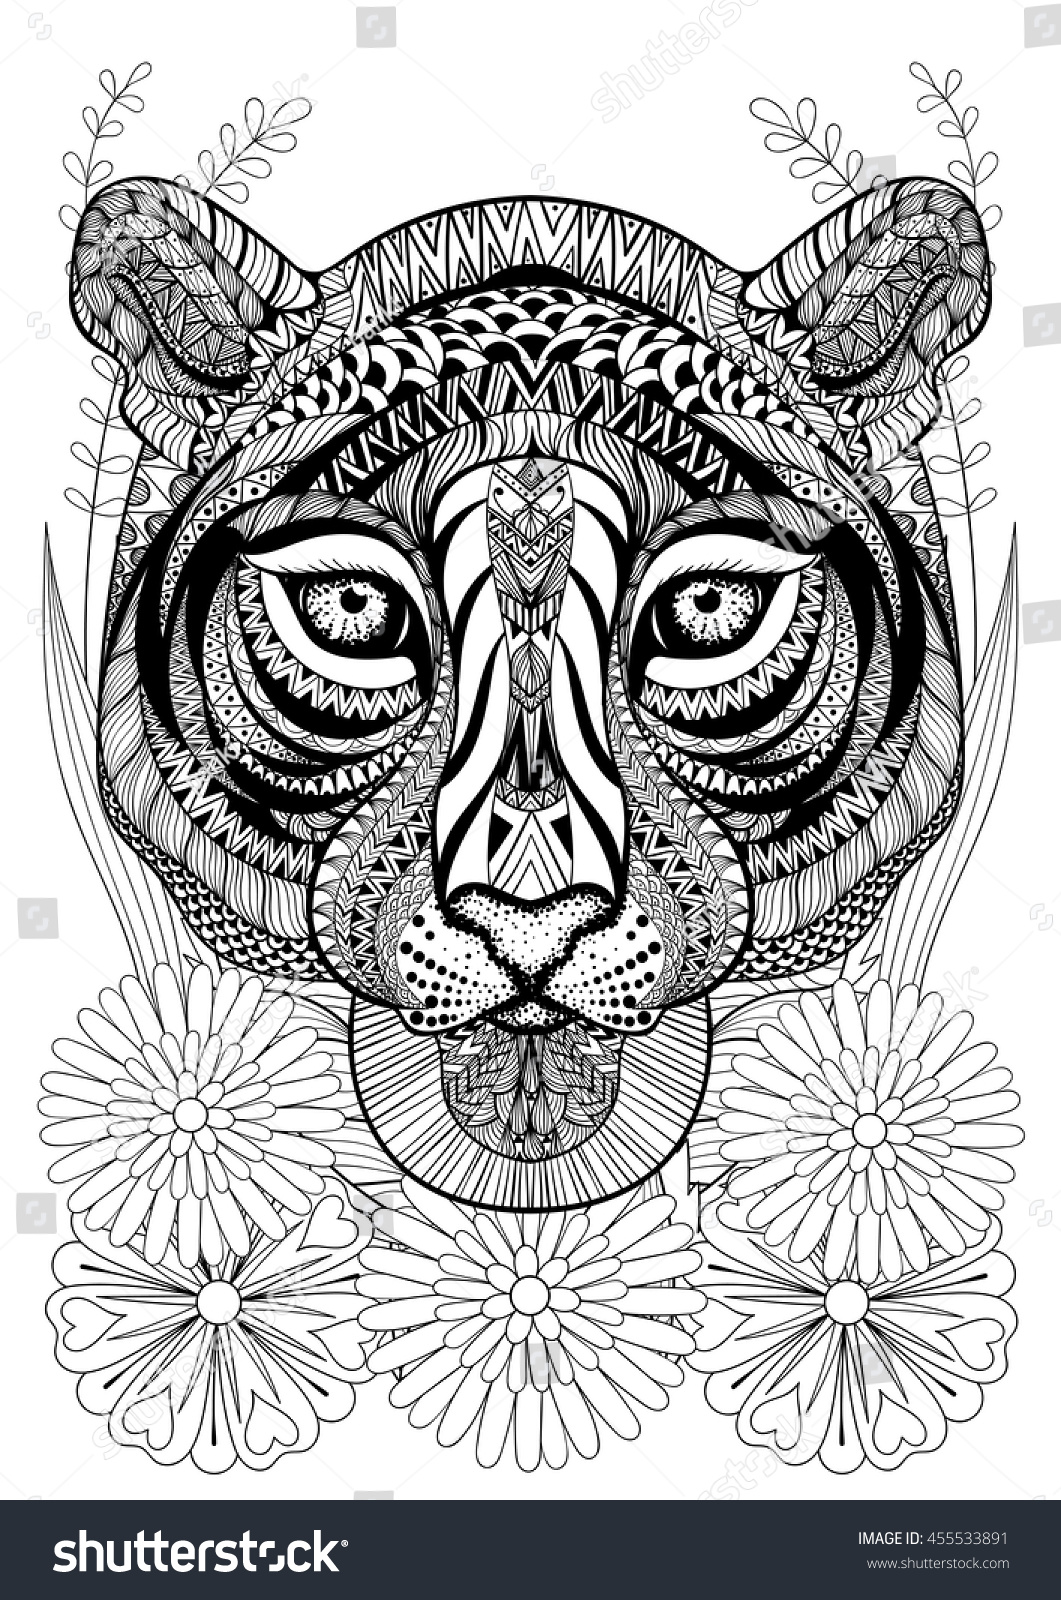 Zentangle Stylized Tiger Face On Flowers Stock Vector